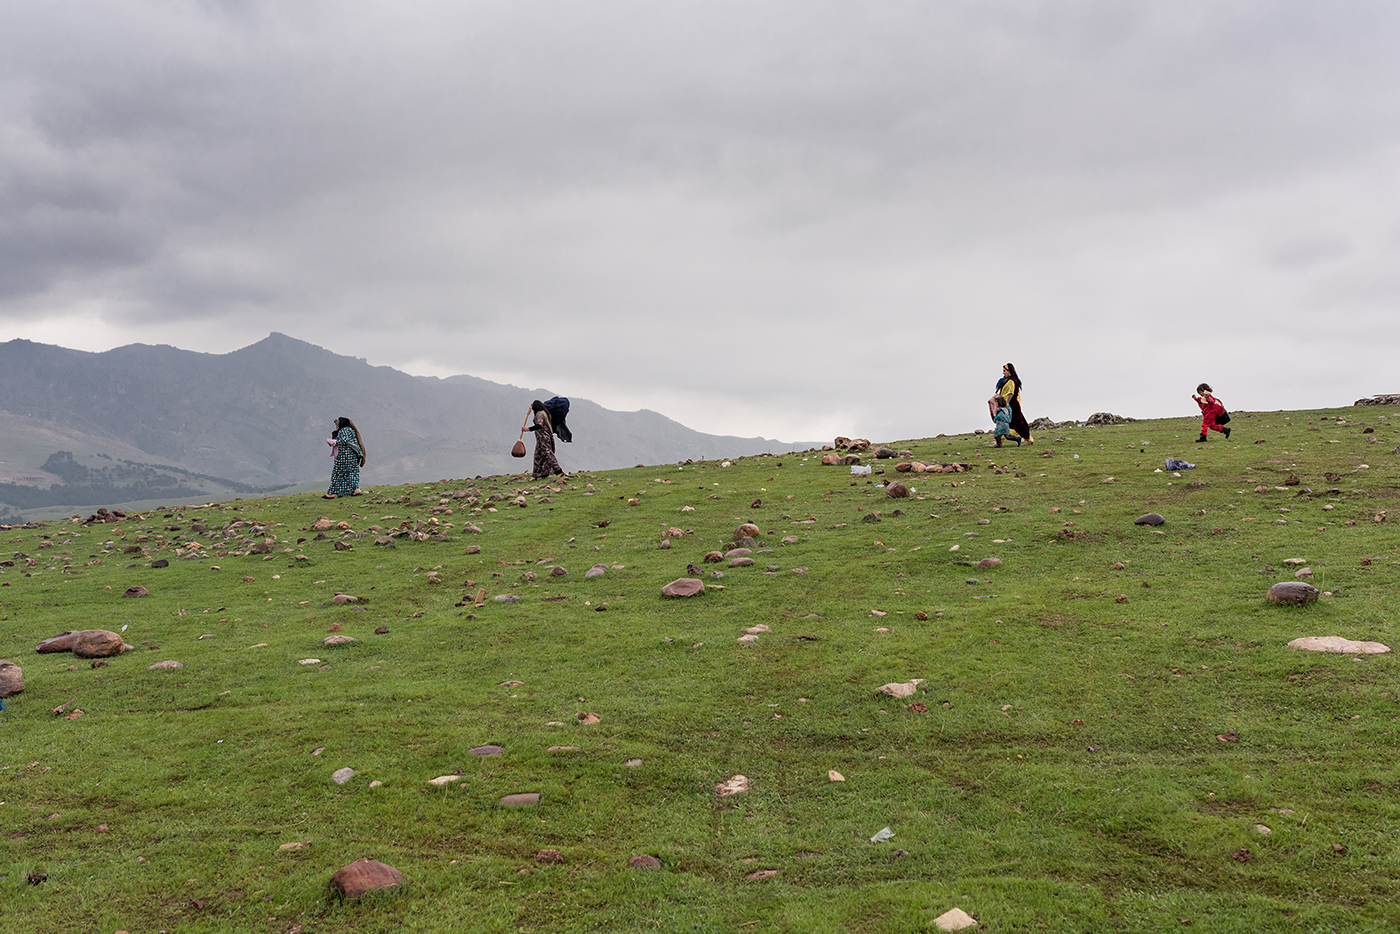 Kurdish women traveling across the Qandil mountains.